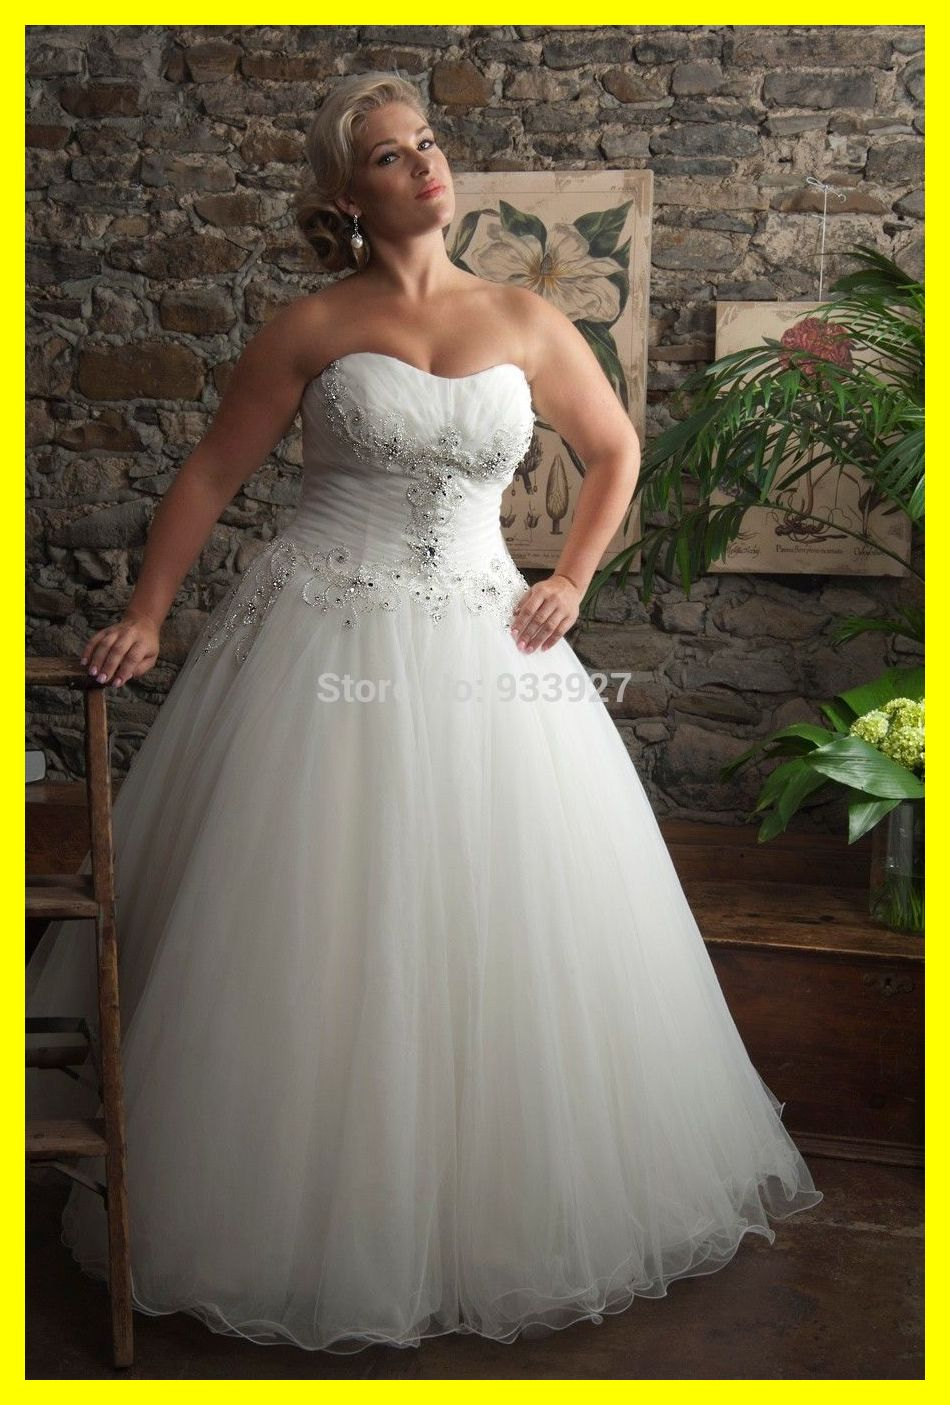 Discount plus size wedding dresses short uk off the rack for Short wedding dresses uk